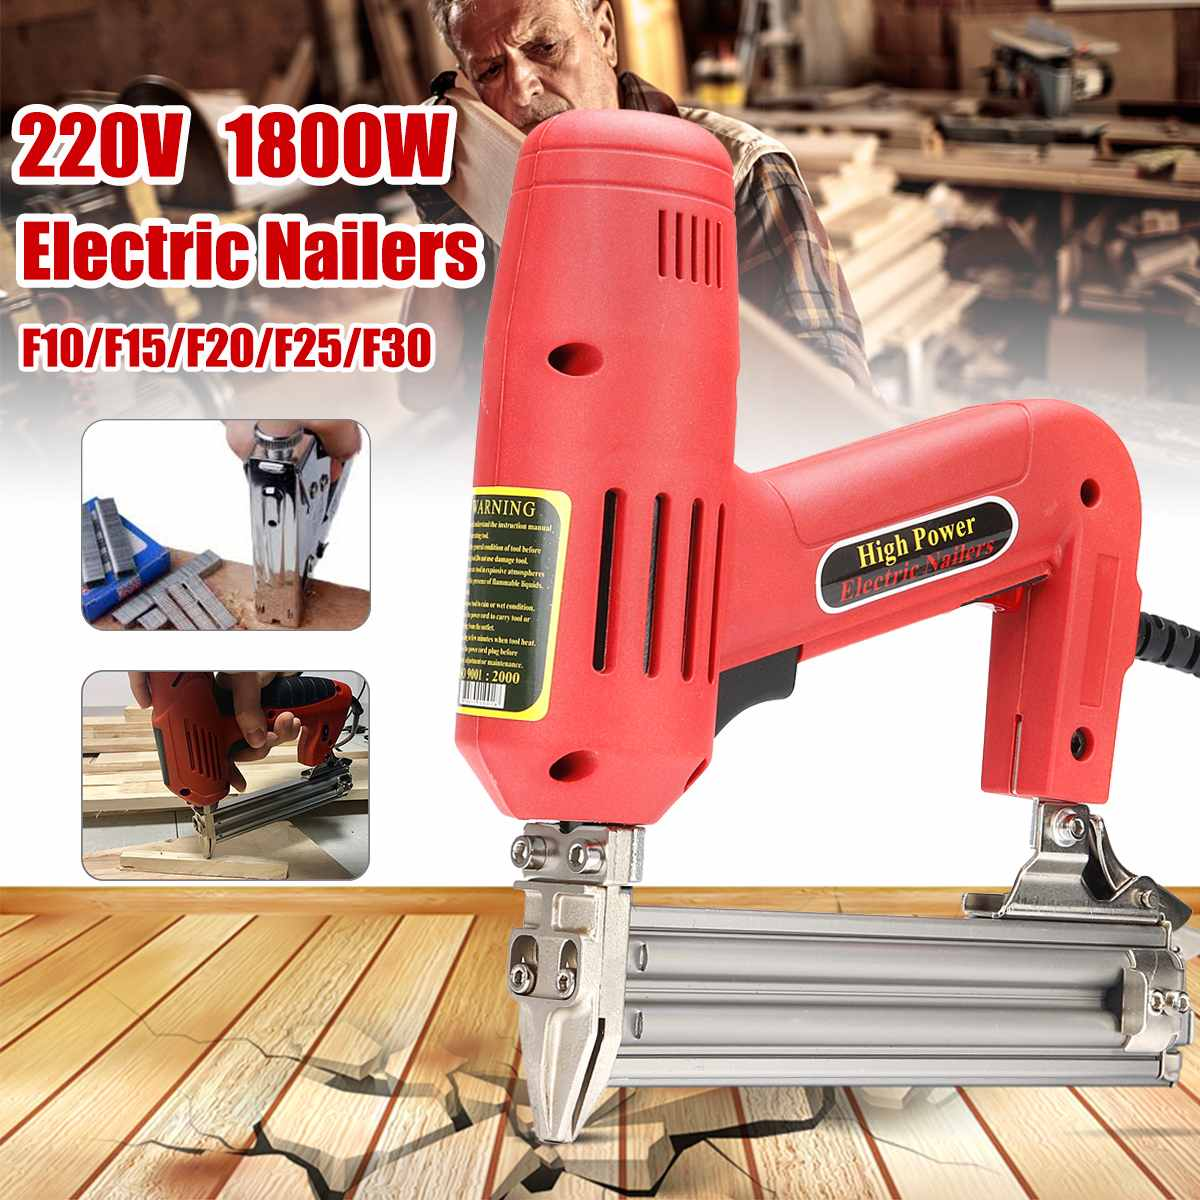 220V 1800W Electric Nailer and Stapler for Furniture Staple for Gun for Frame with Staples Nails